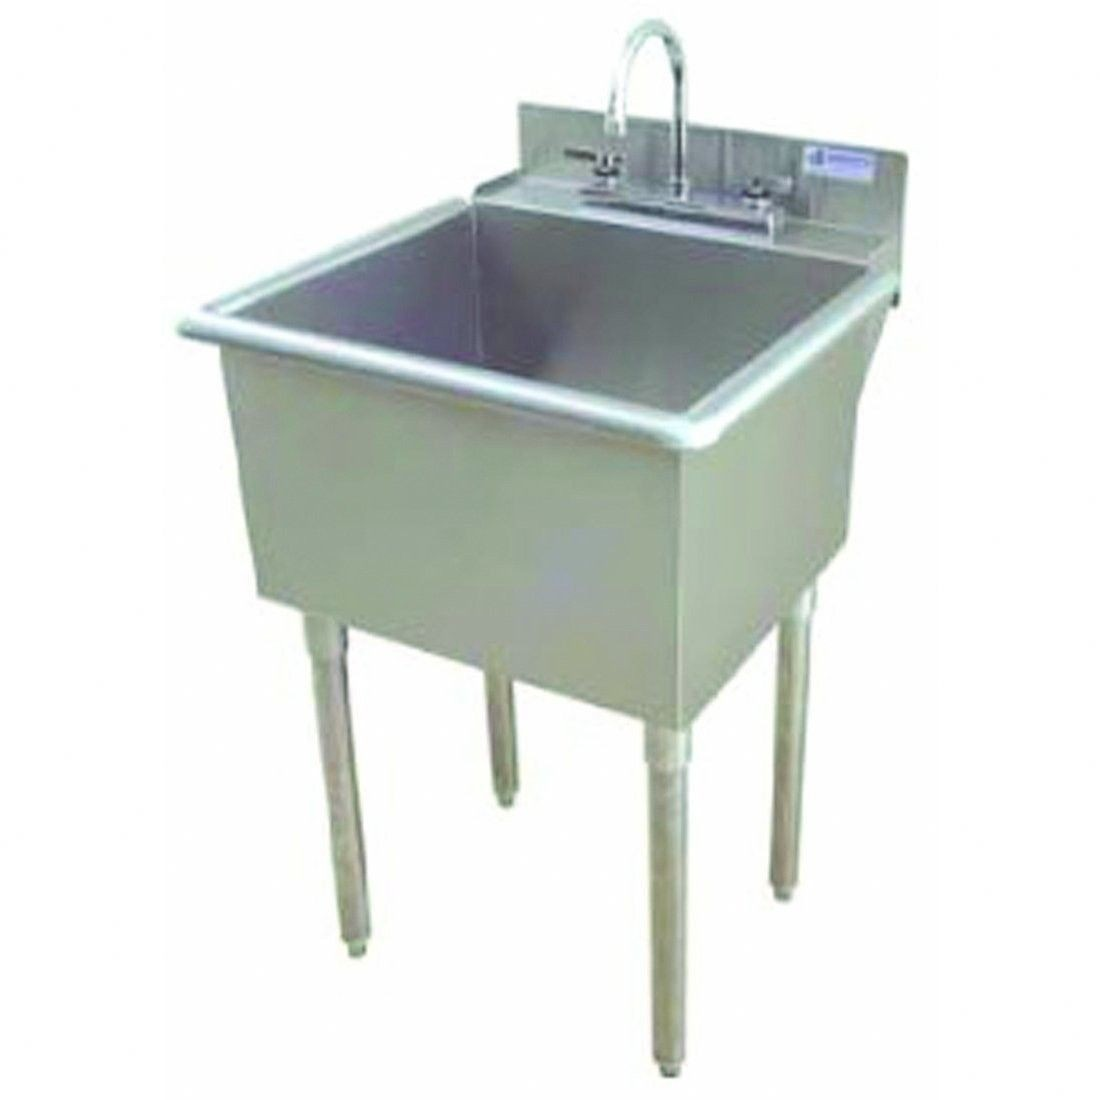 Superbe Stainless Steel Utility Sink With Legs   Foter